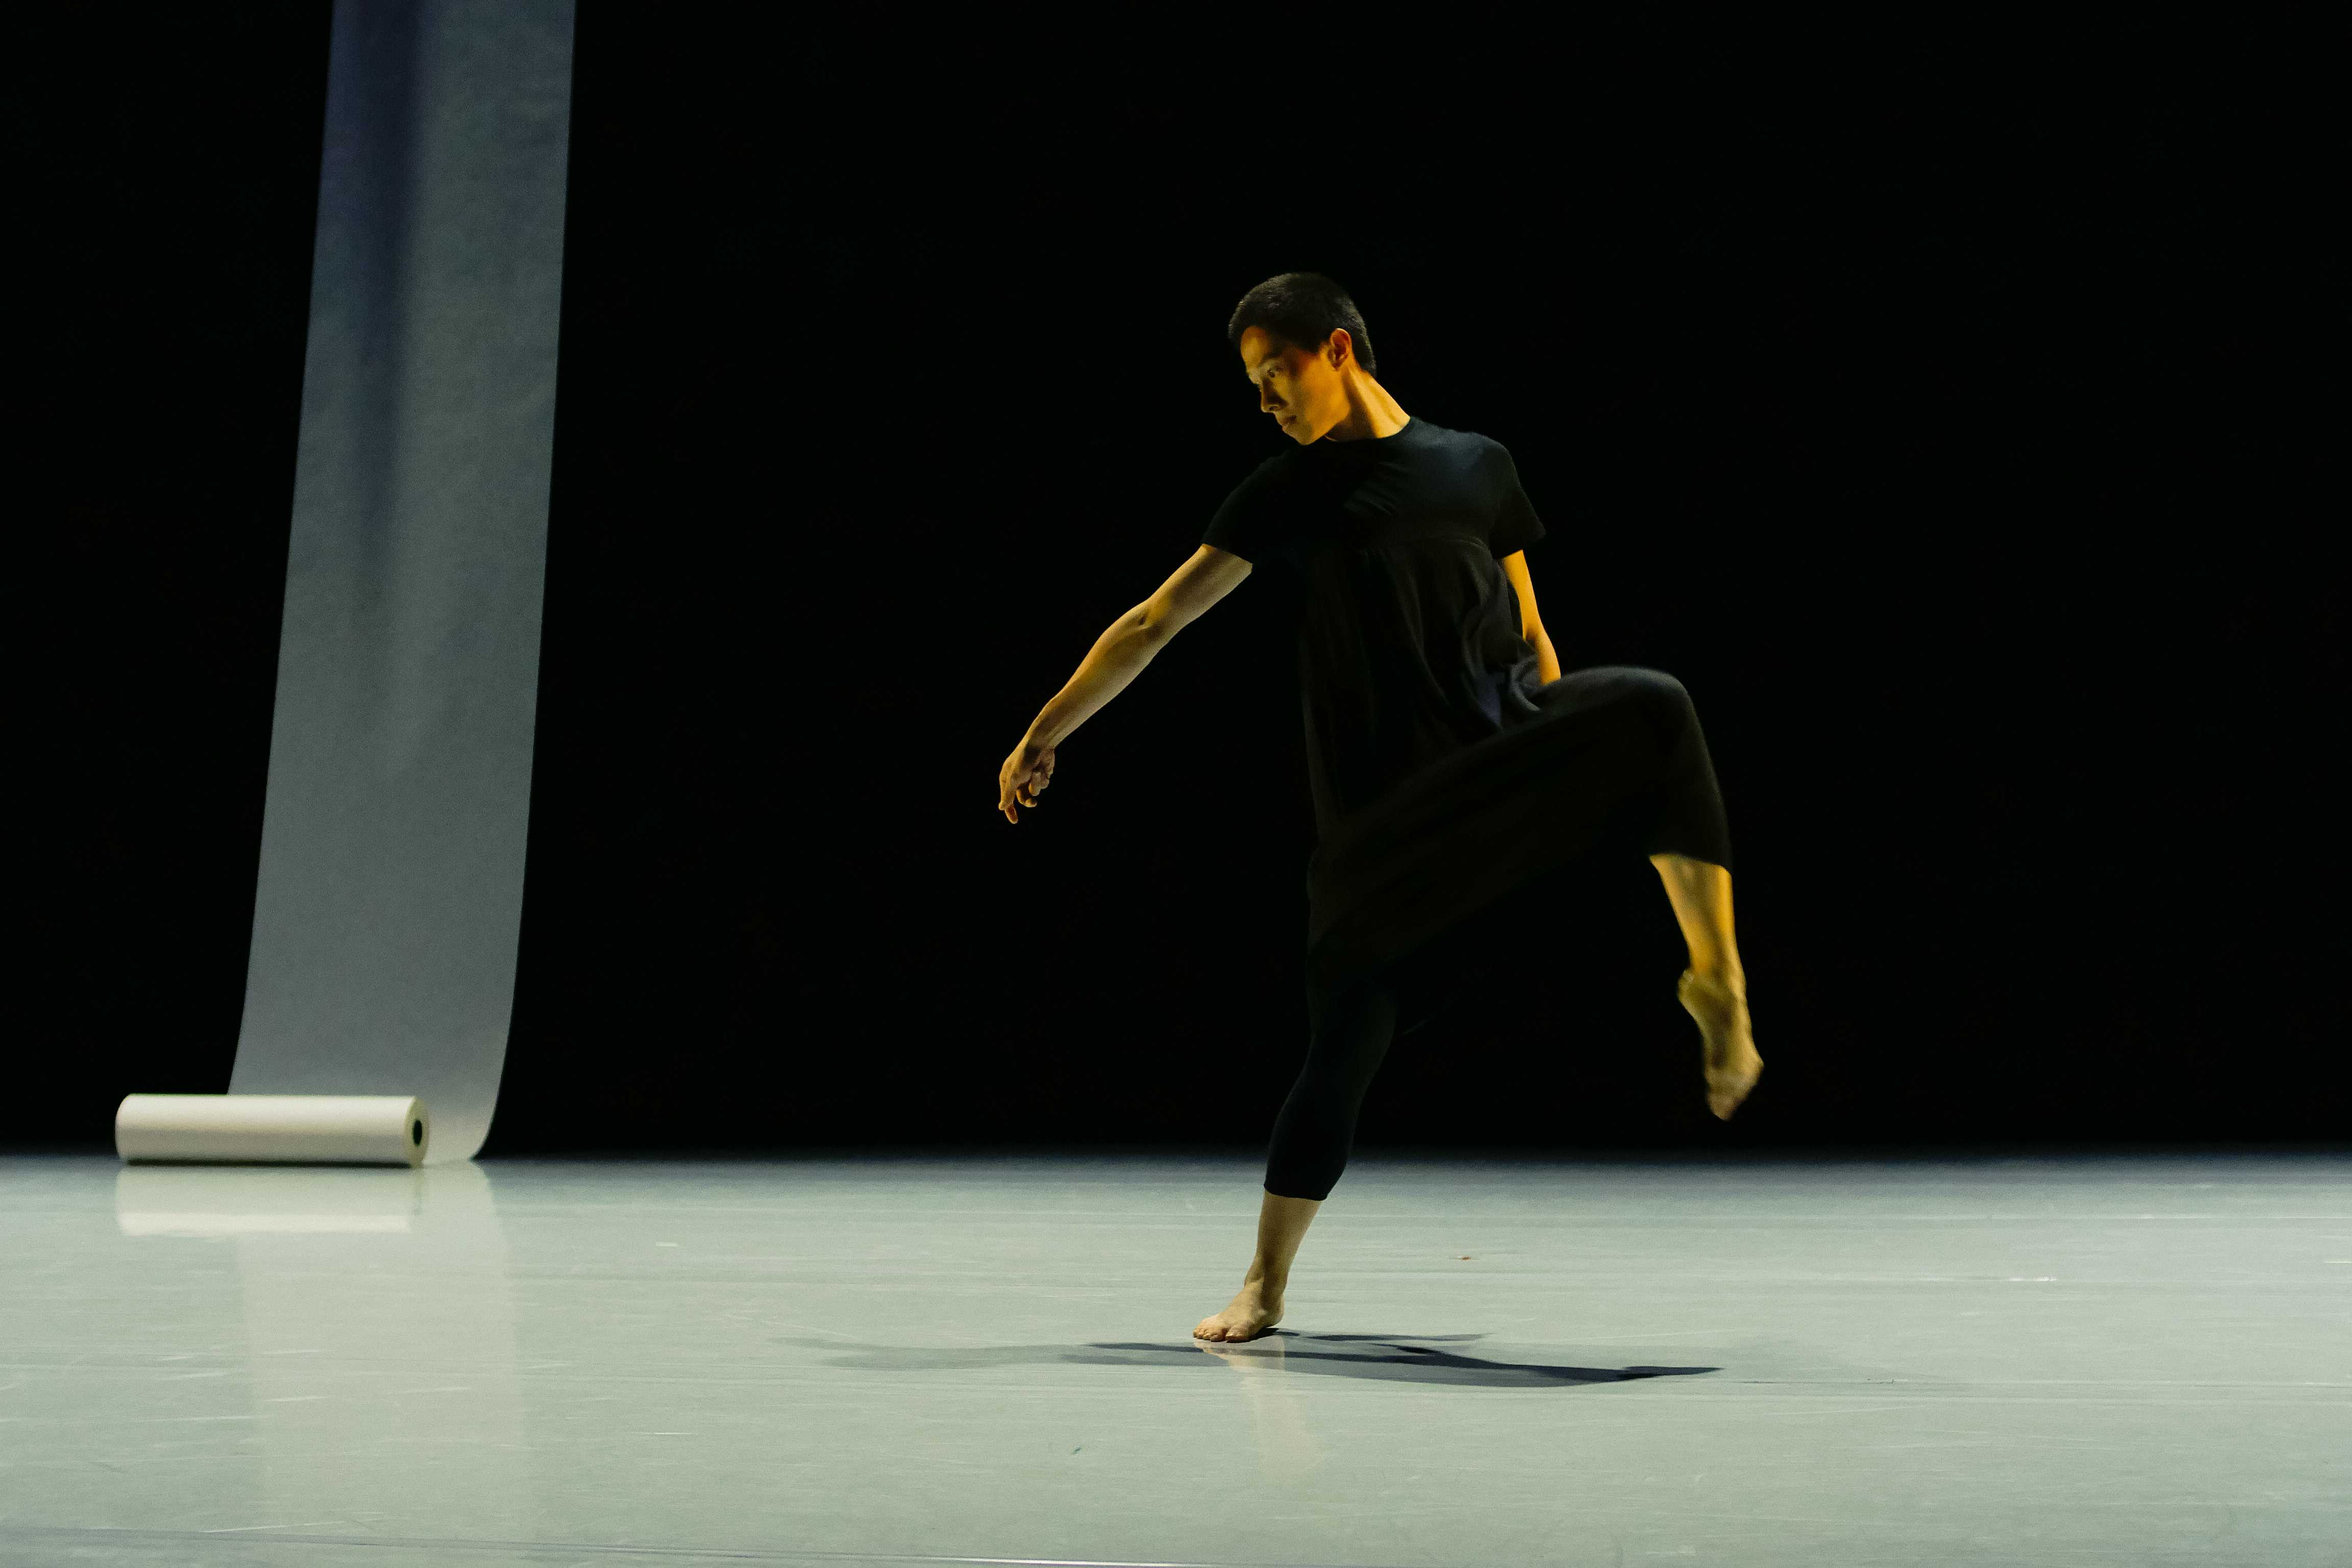 Chang Liu performs in his own piece